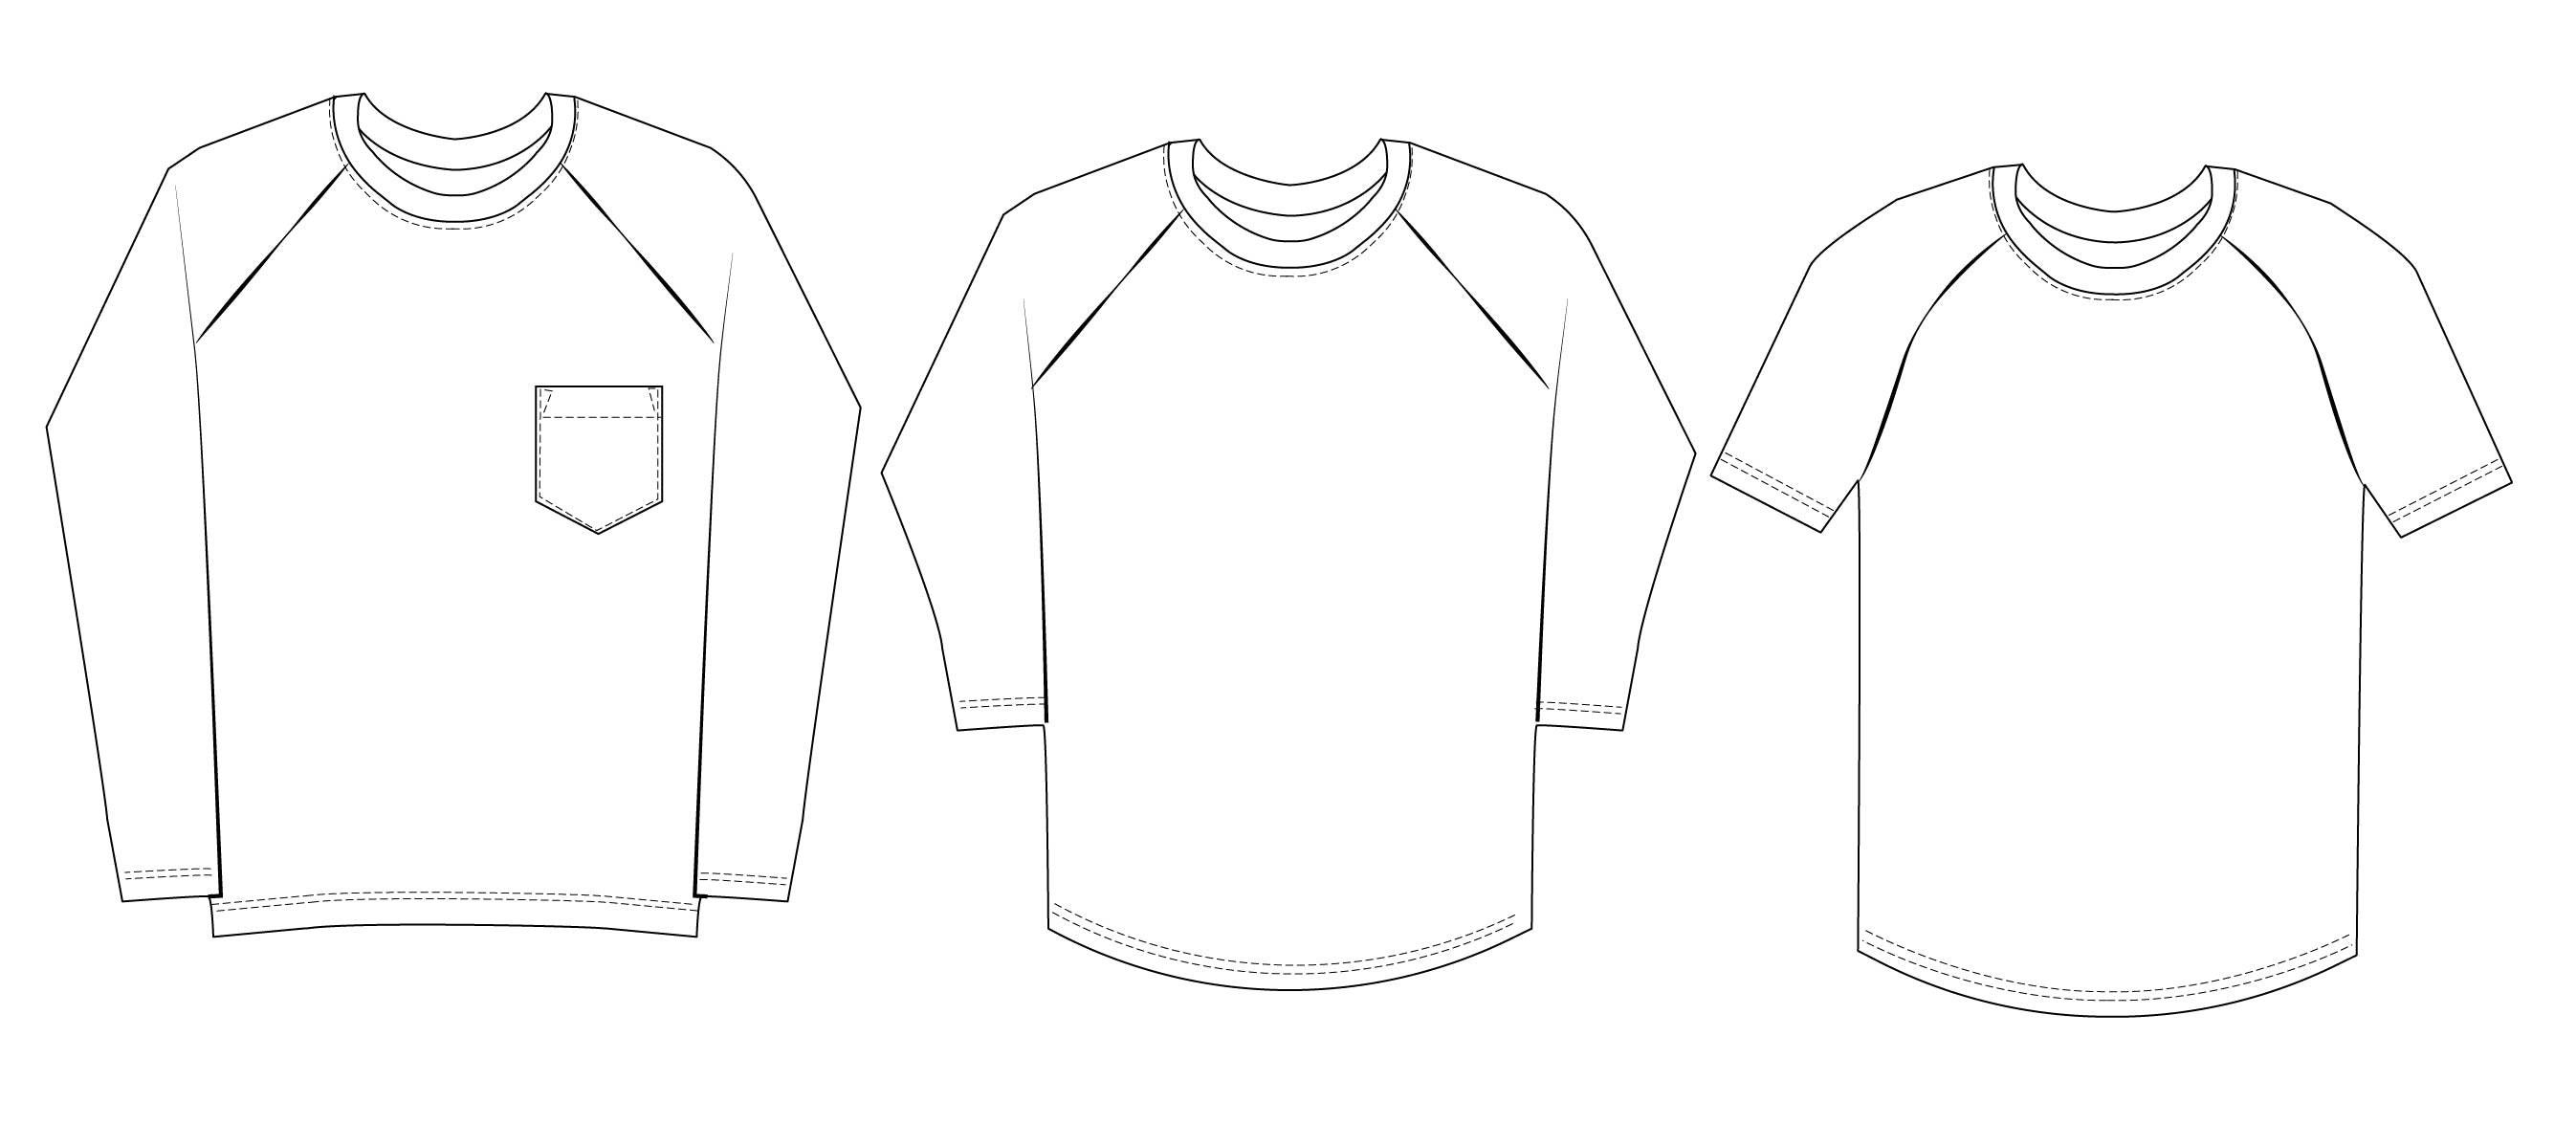 Bram Raglan T-shirt Sewing Pattern Wardrobe By Me PDF